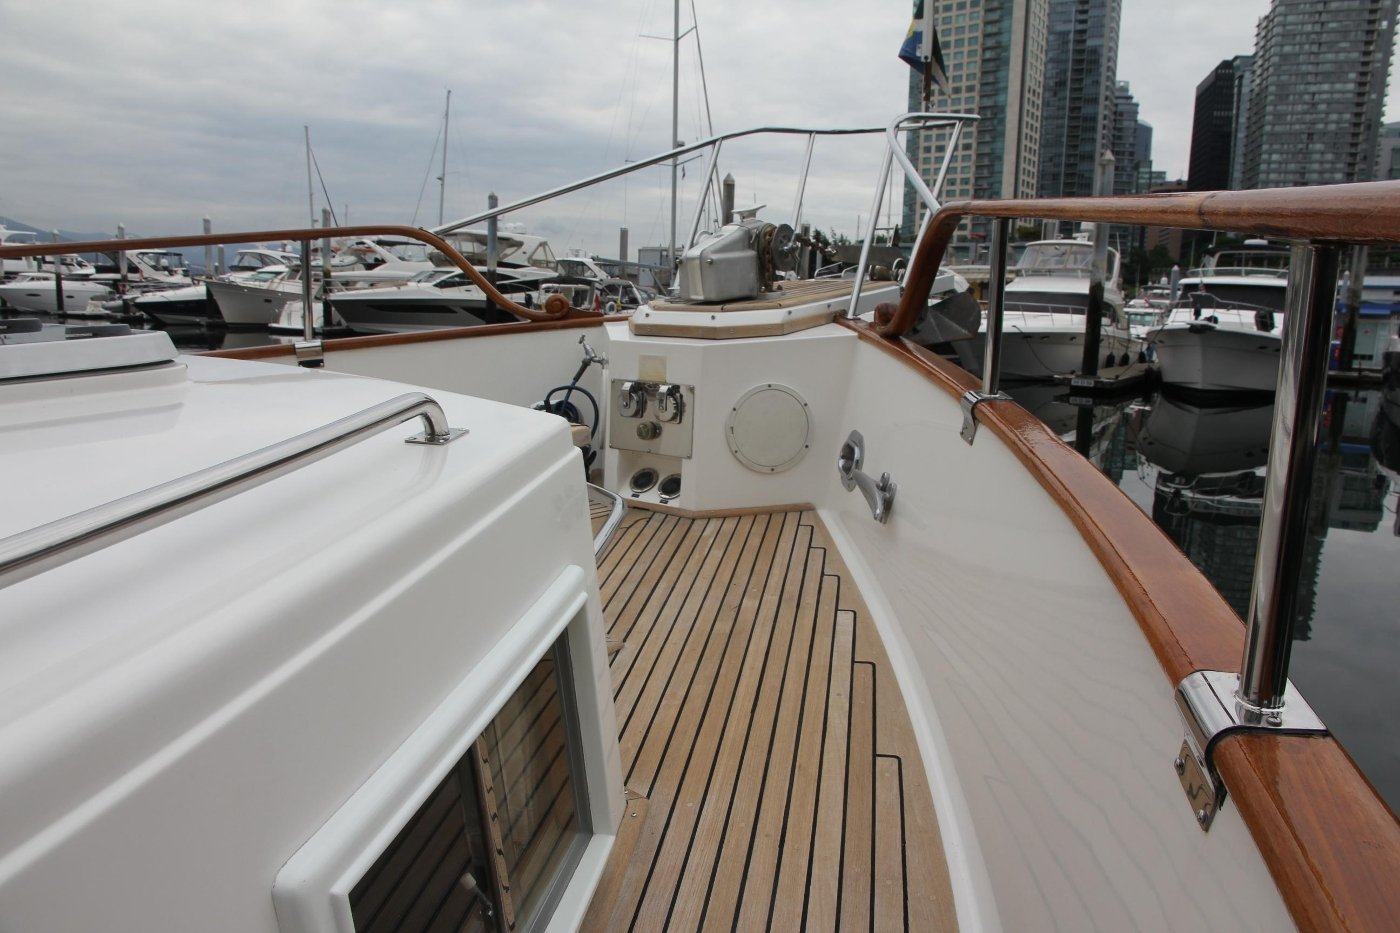 2001 Grand Banks 42 Classic, Foredeck Finishes